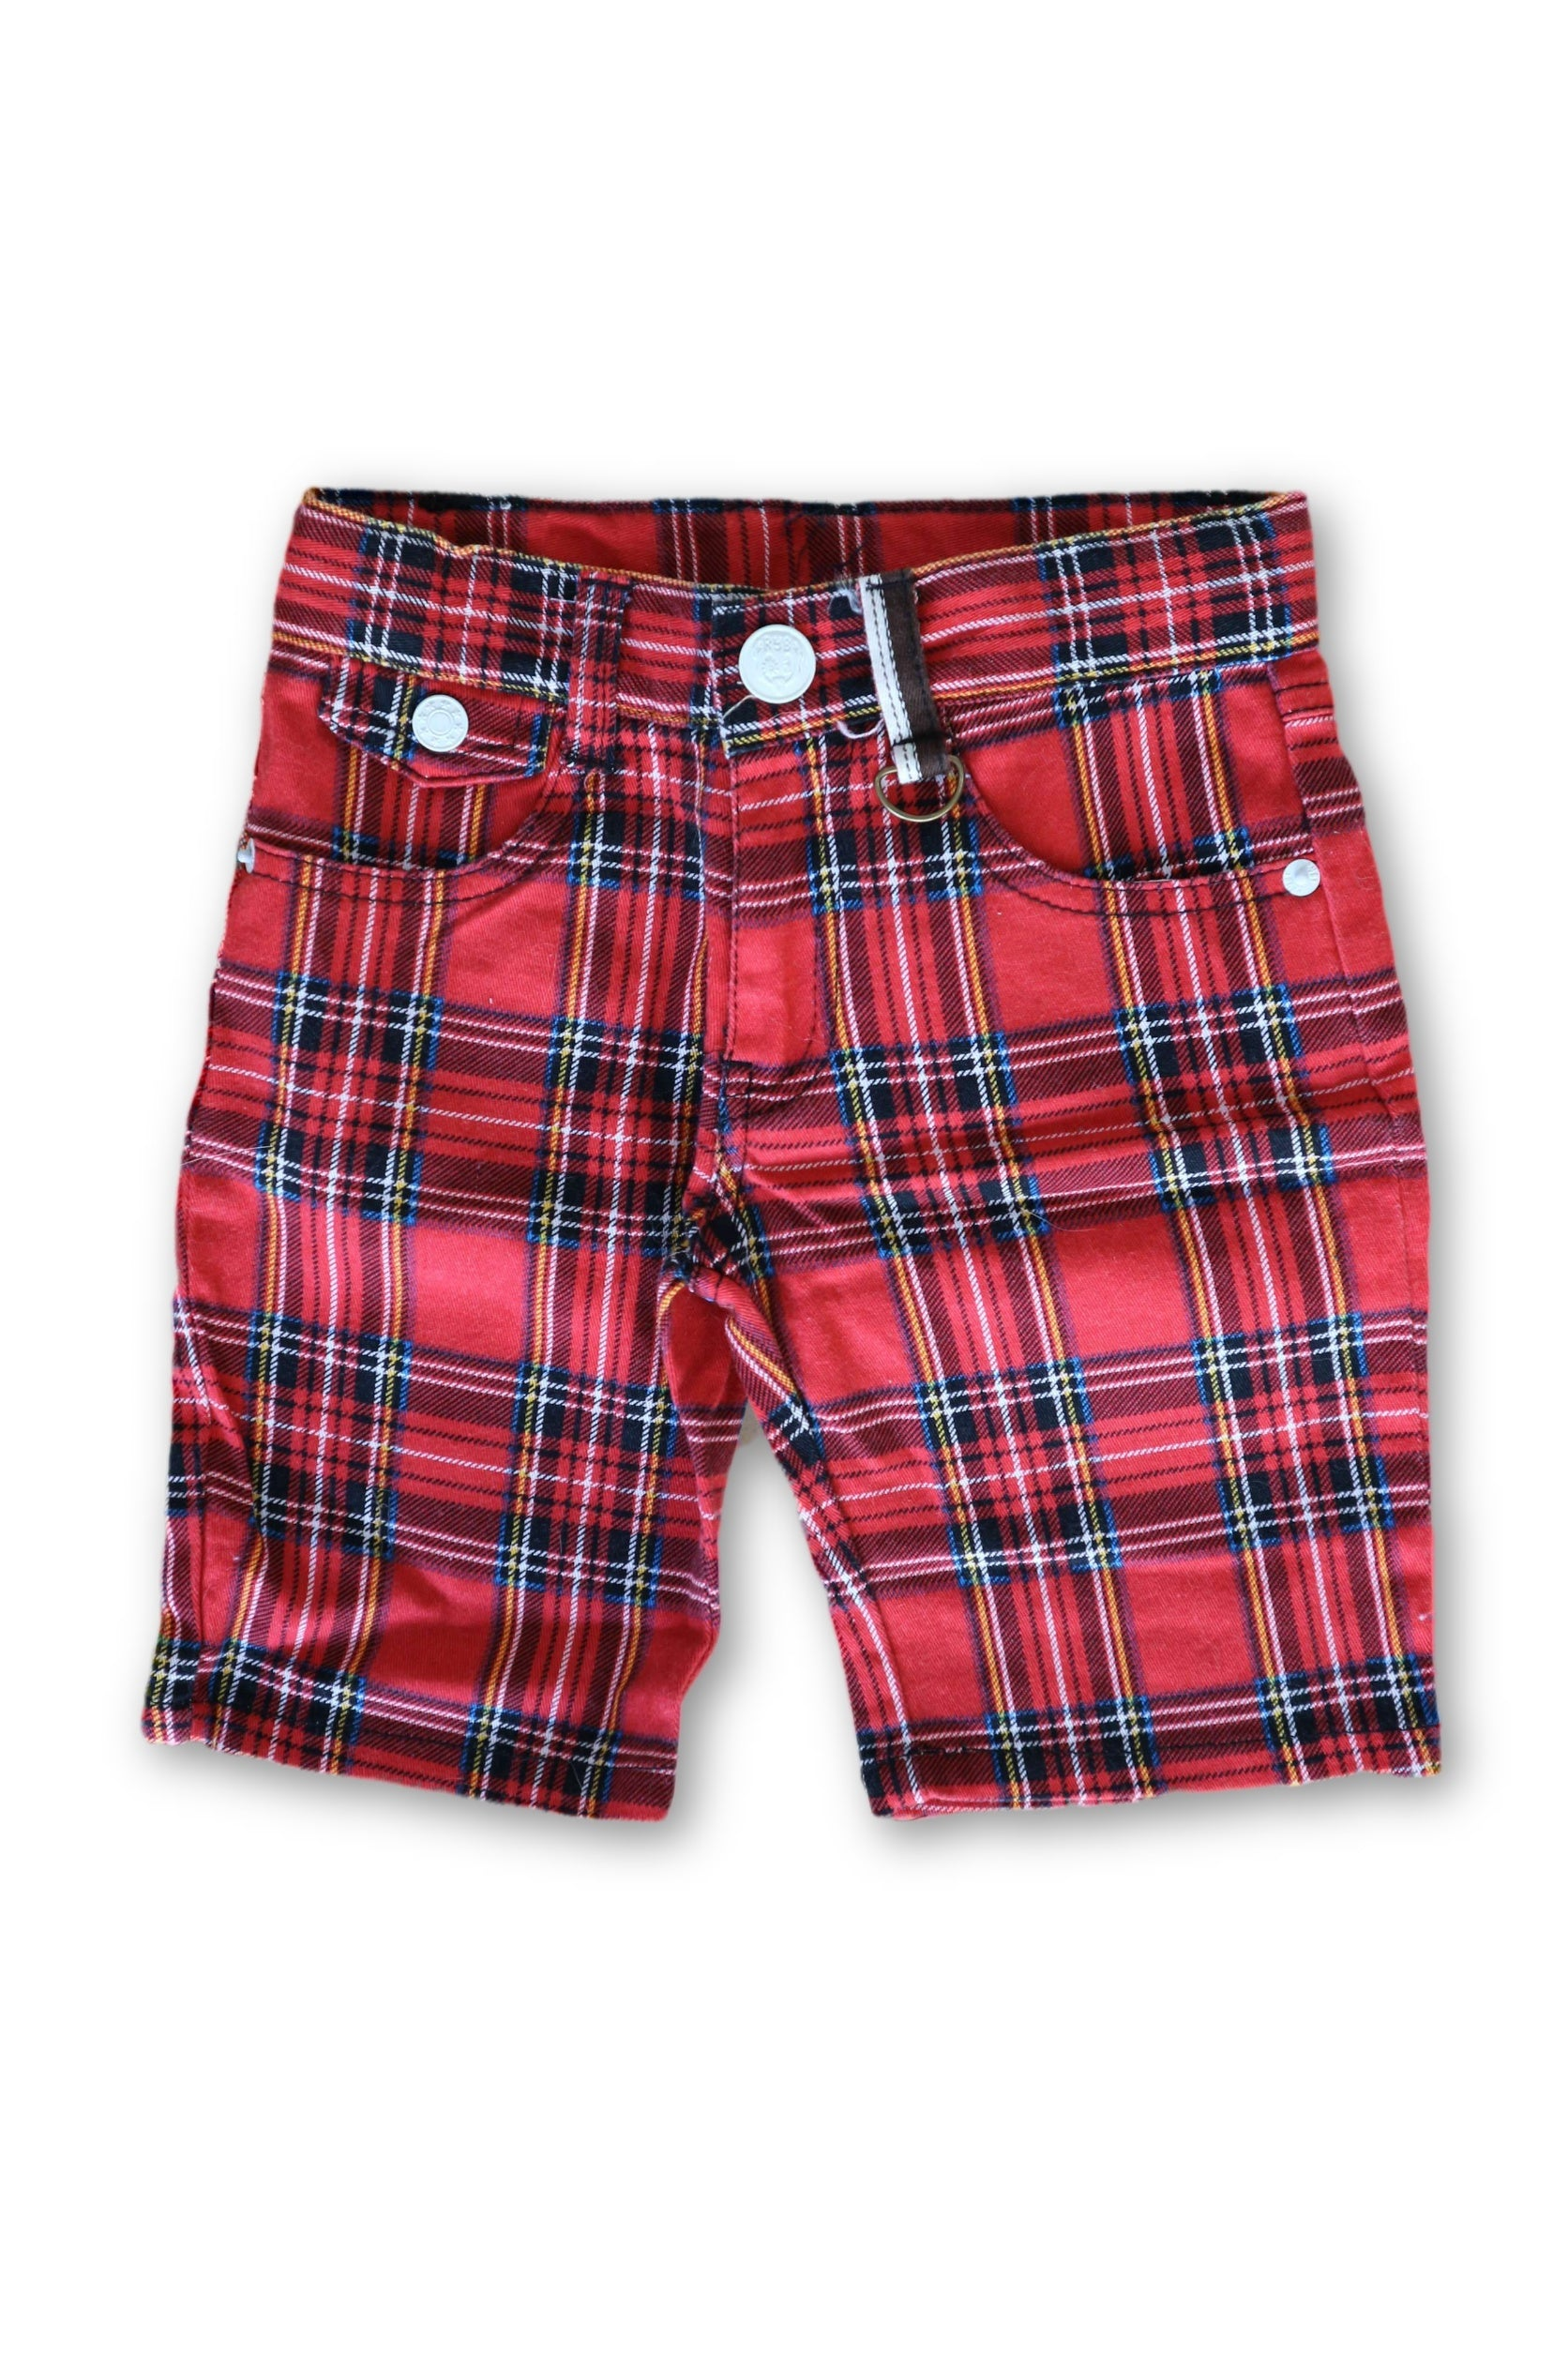 Rock Your Kid Shorts size 5 - Use-Ta! Preloved Children's Wear Online